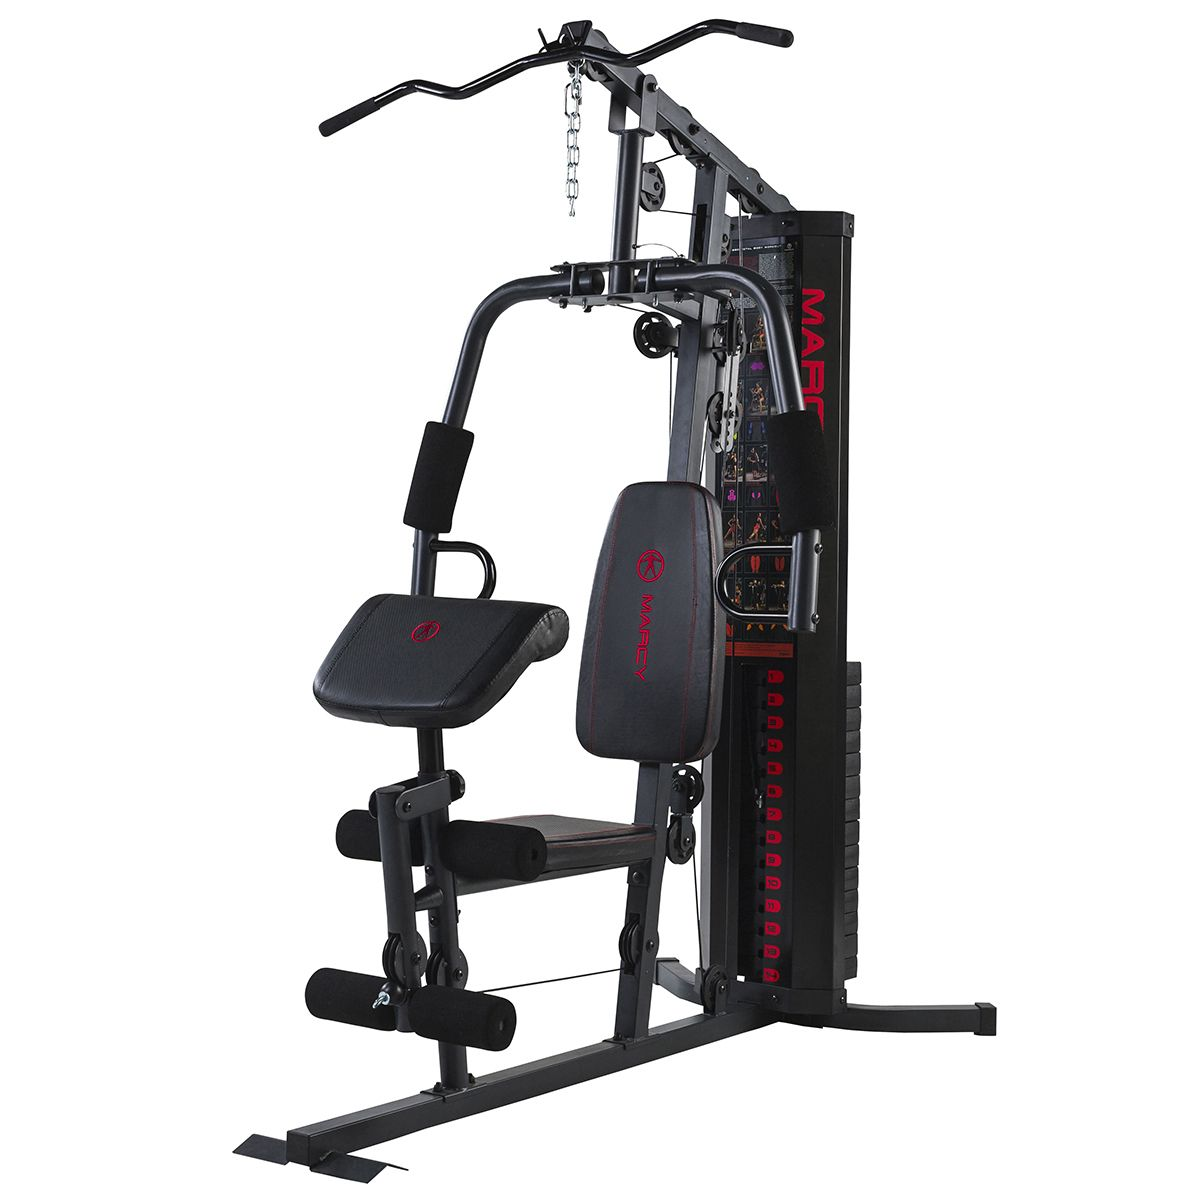 Marcy eclipse hg compact home gym lat pulldown